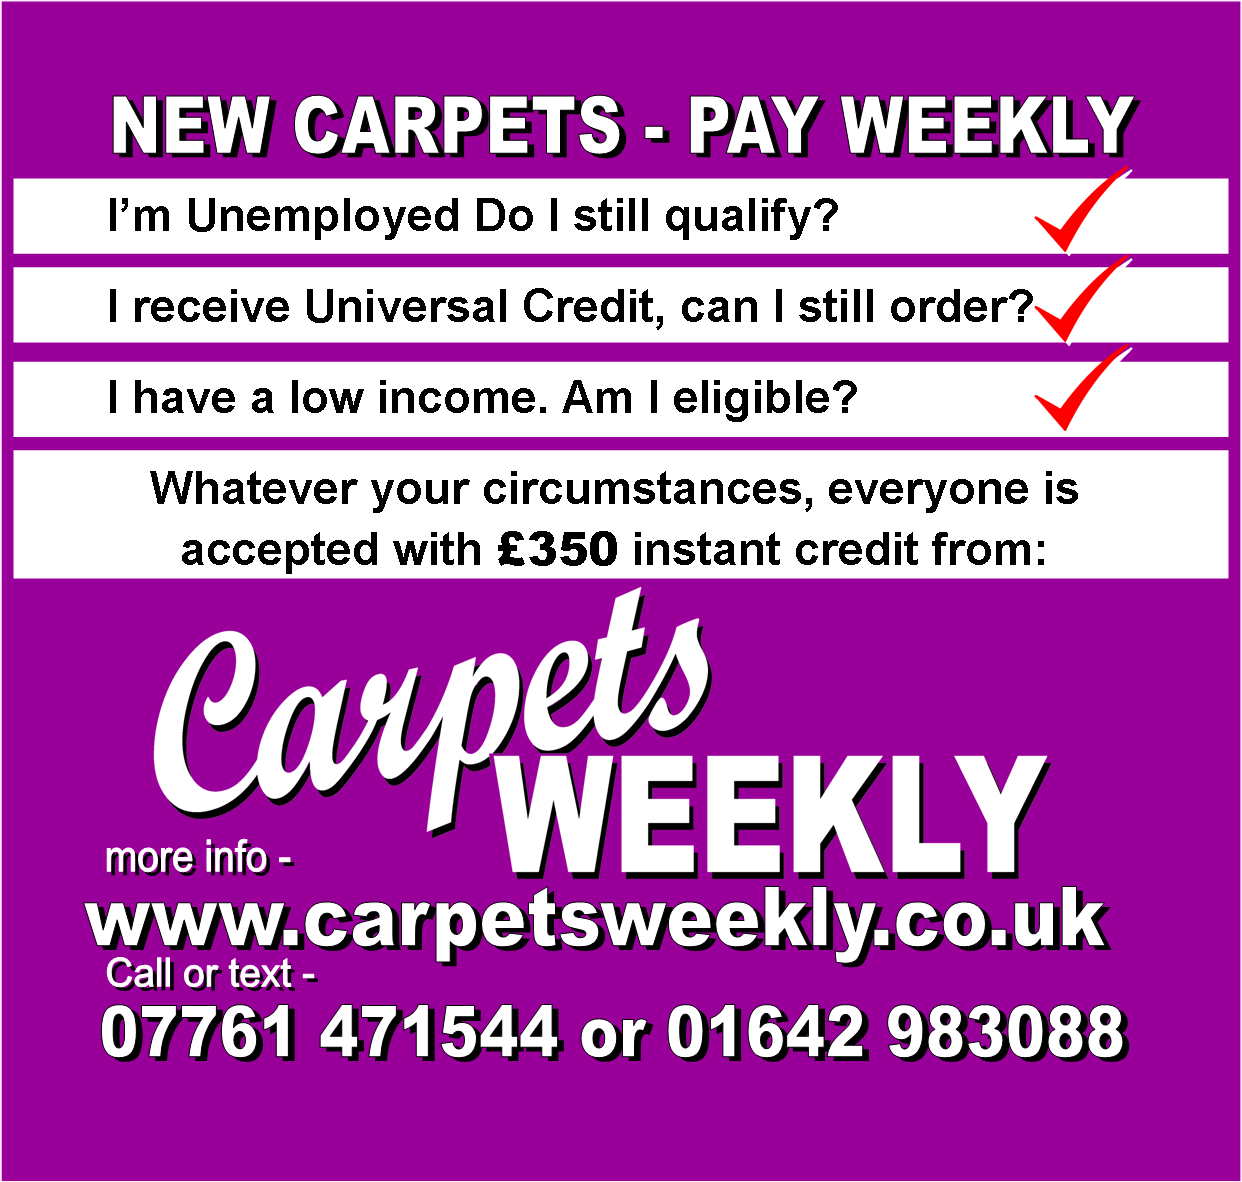 Carpets Weekly Guaranteed Acceptance